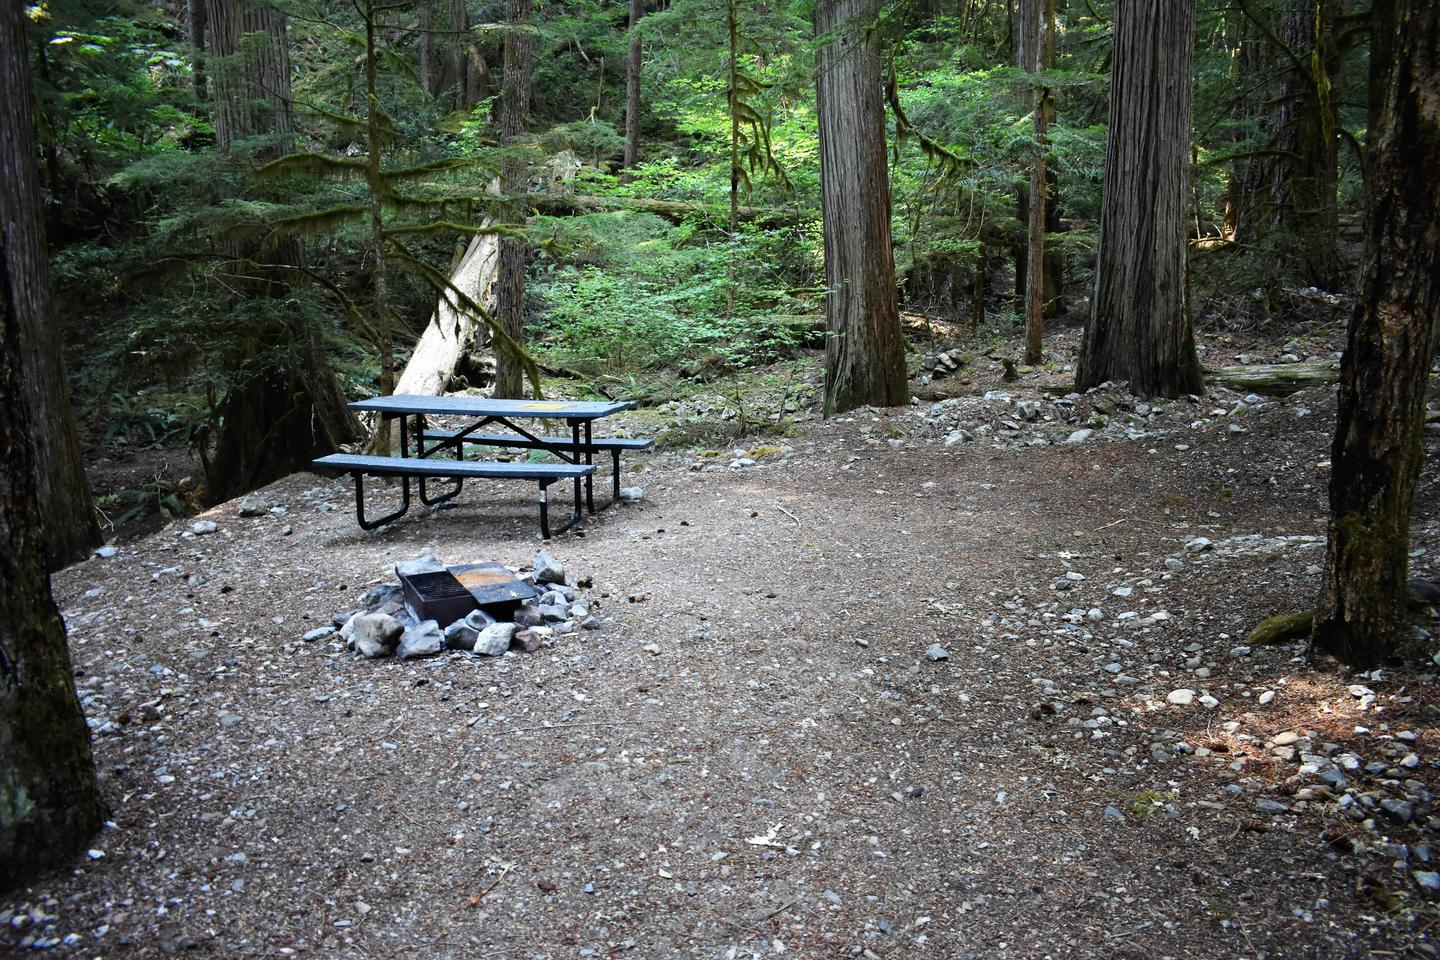 Picnic table, fire ring, and tent areaView of campsite